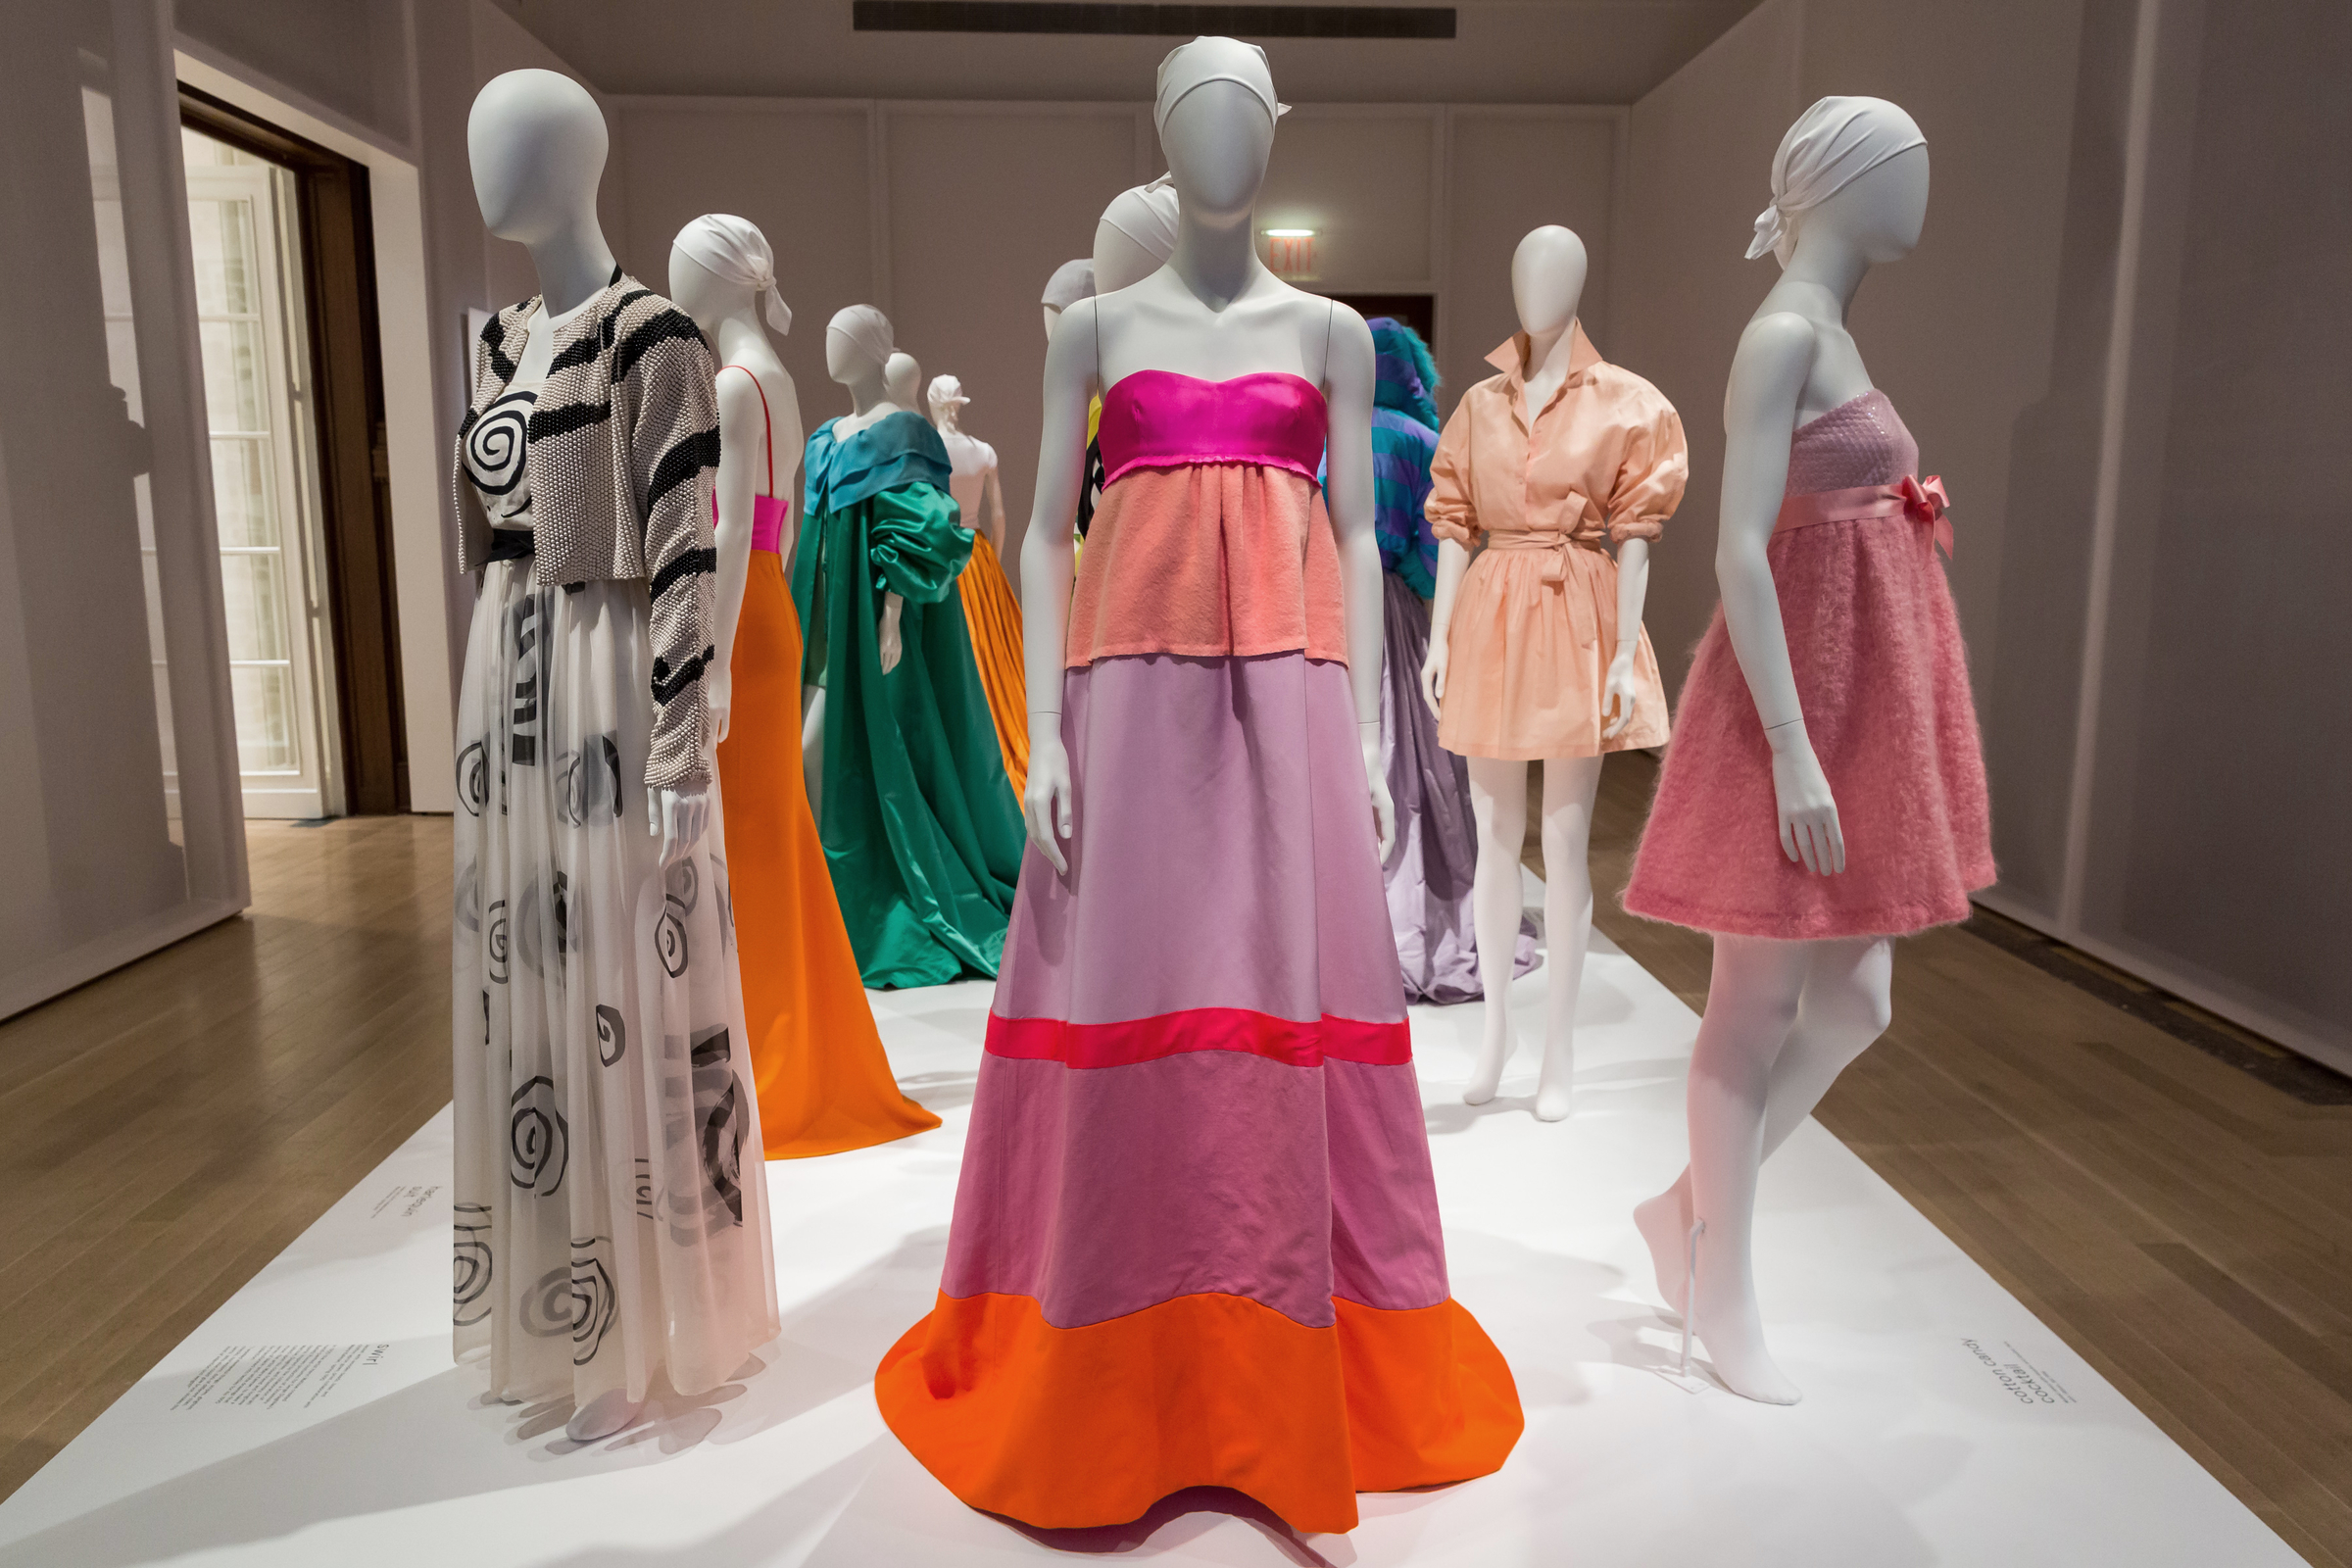 Installation view of the exhibition Isaac Mizrahi: An Unruly History, March 18-August 7, 2016.  Photo by: Will Ragozzino/SocialShutterbug.com